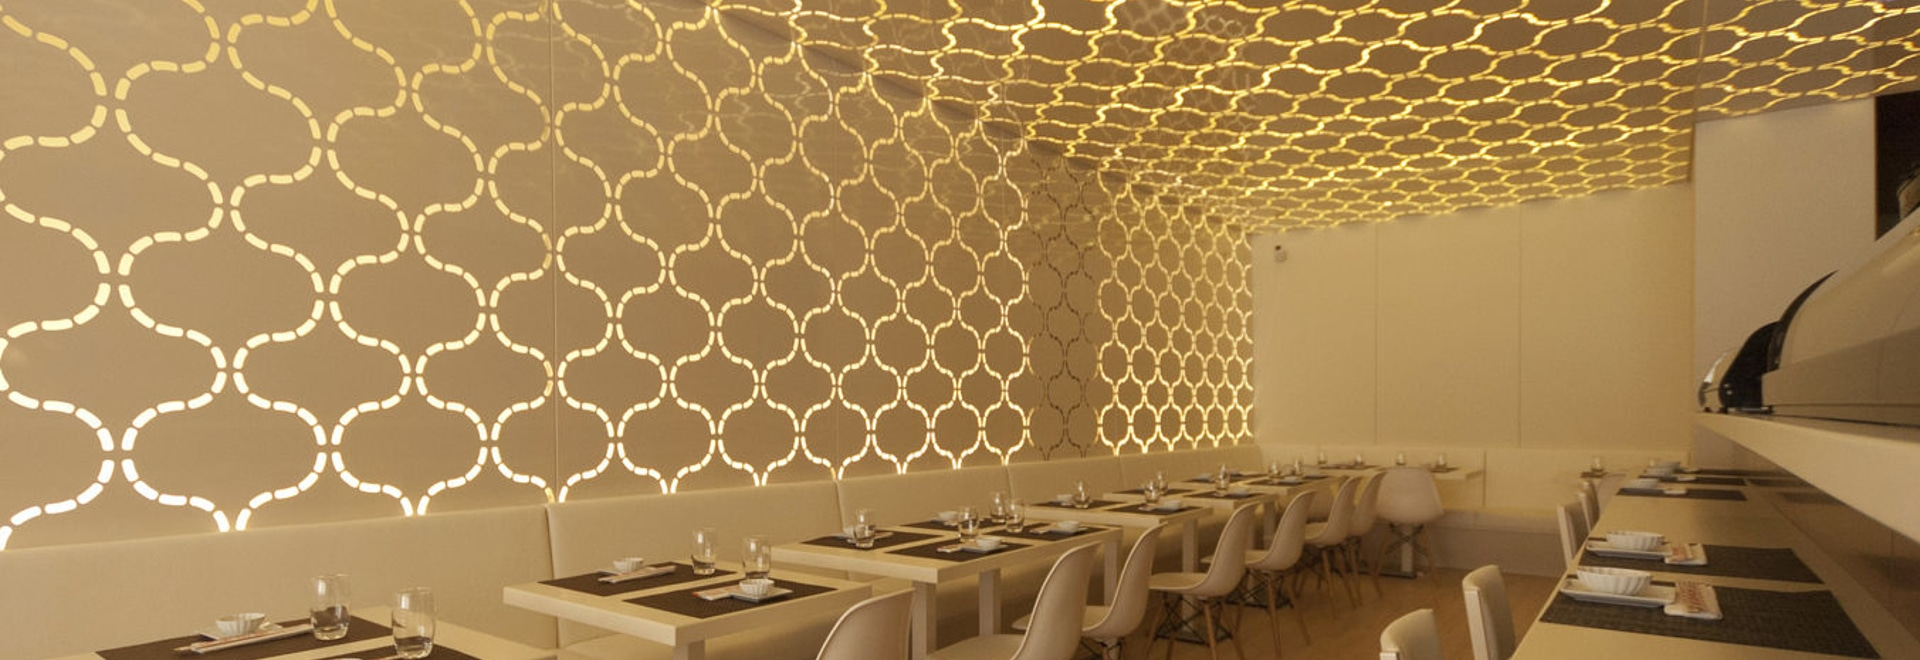 NEW: Walls and ceilings covering panels by BPLAN